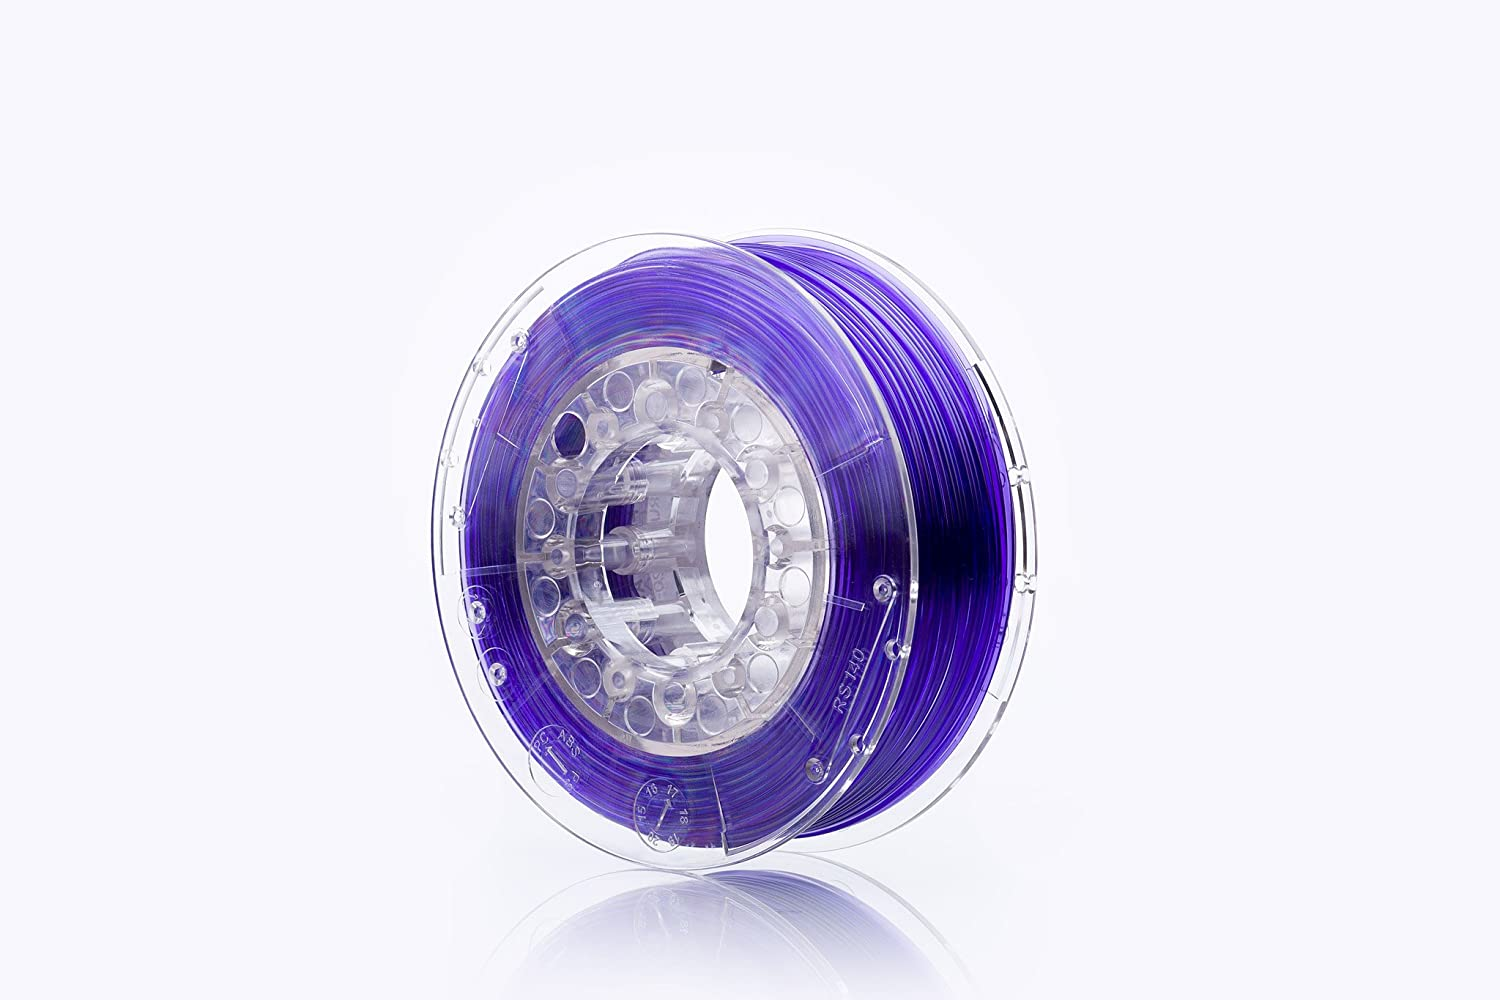 print-Me 5906190617170 Filament fü r 3D Drucker Swift PET-G 1.75 mm, Violet Glass POLIGRAF